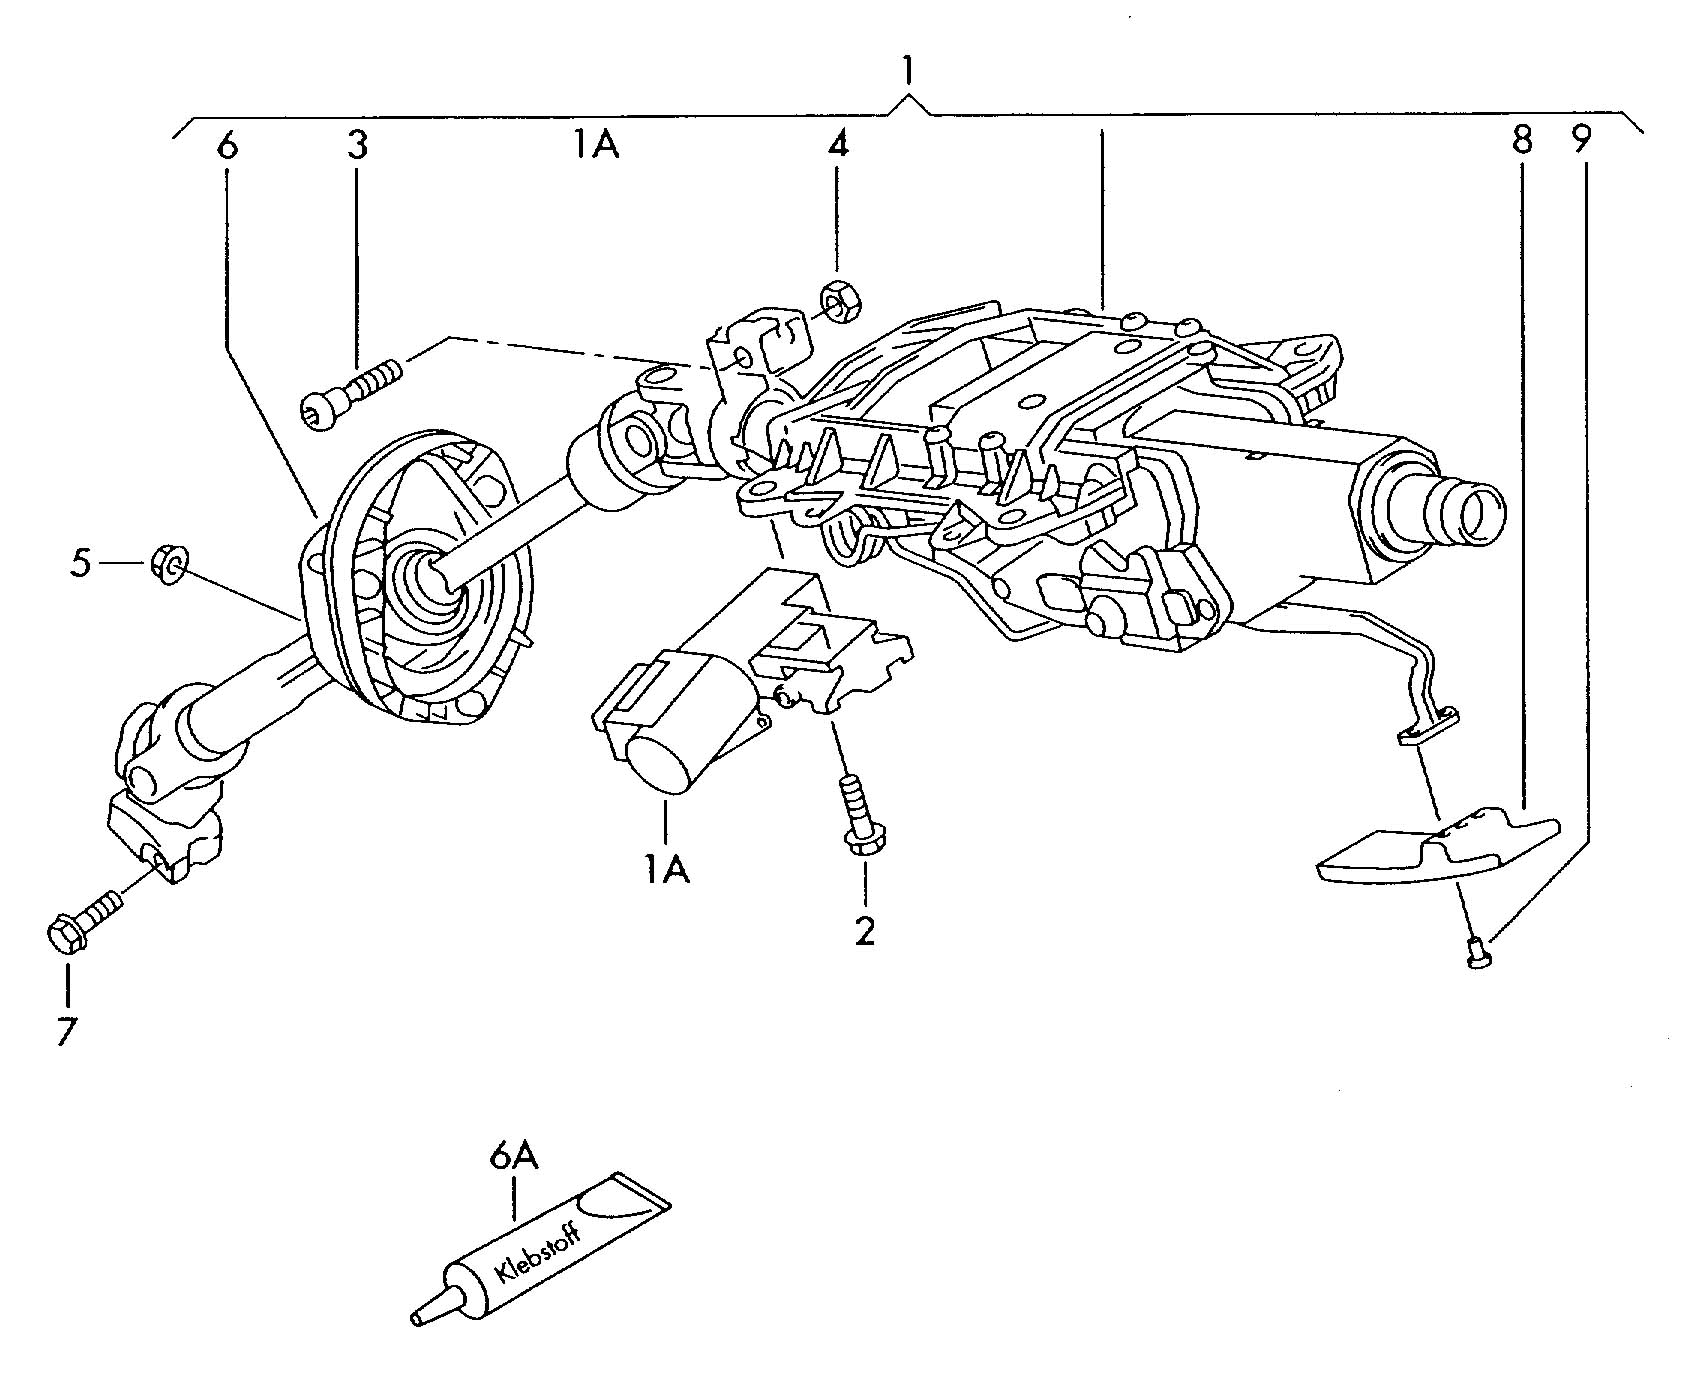 Volkswagen Touareg Steering Column For Vehicles With